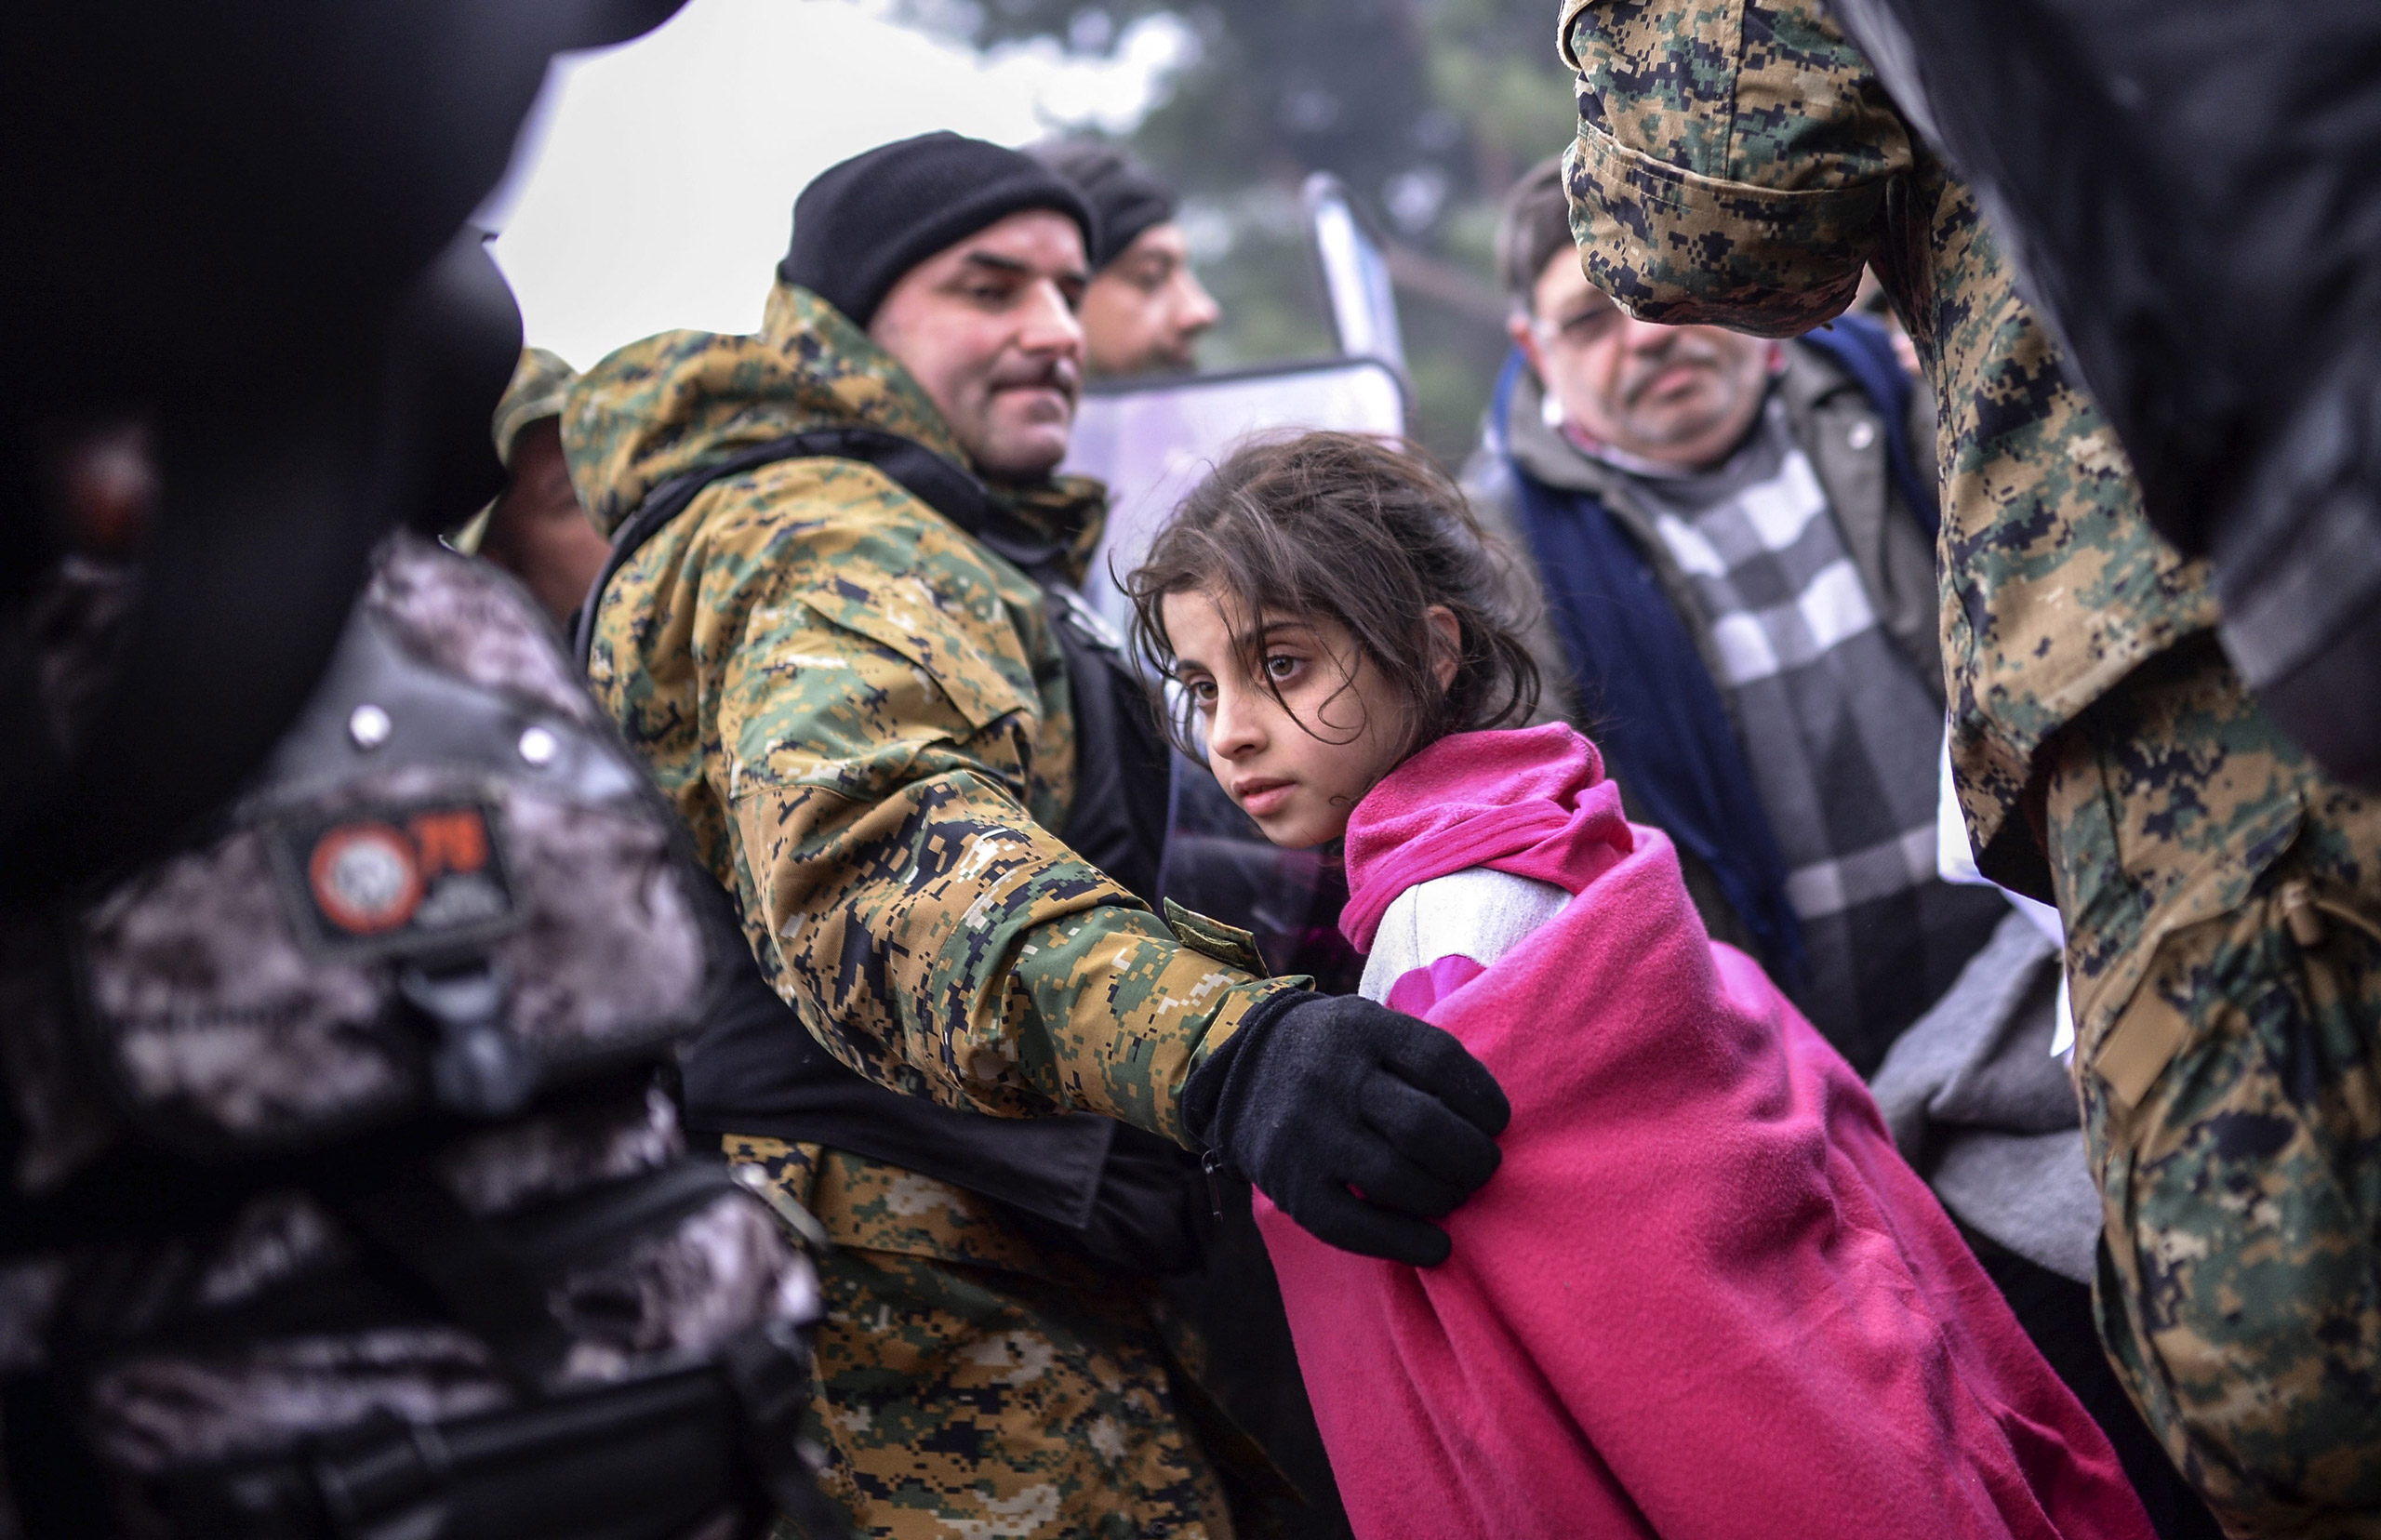 A Macedonian police officer helps a girl move past the cordon on the Greek-Macedonian border after Macedonia has started letting in refugees from Syria, Iraq and Afghanistan, near Gevegelija, Macedonia, on 20 Nov. 2015.